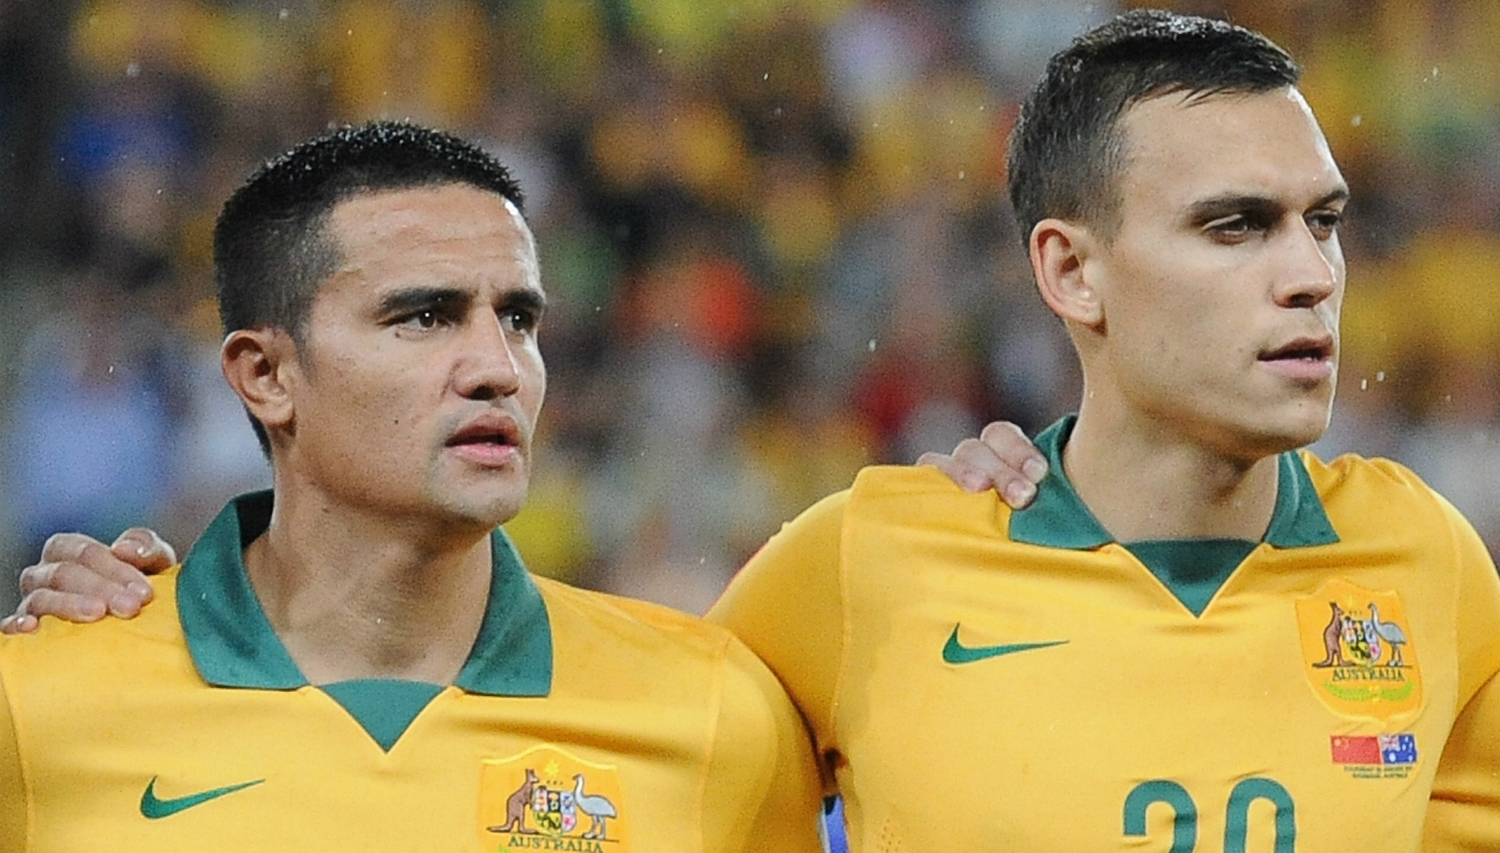 Tim Cahill and Trent Sainsbury